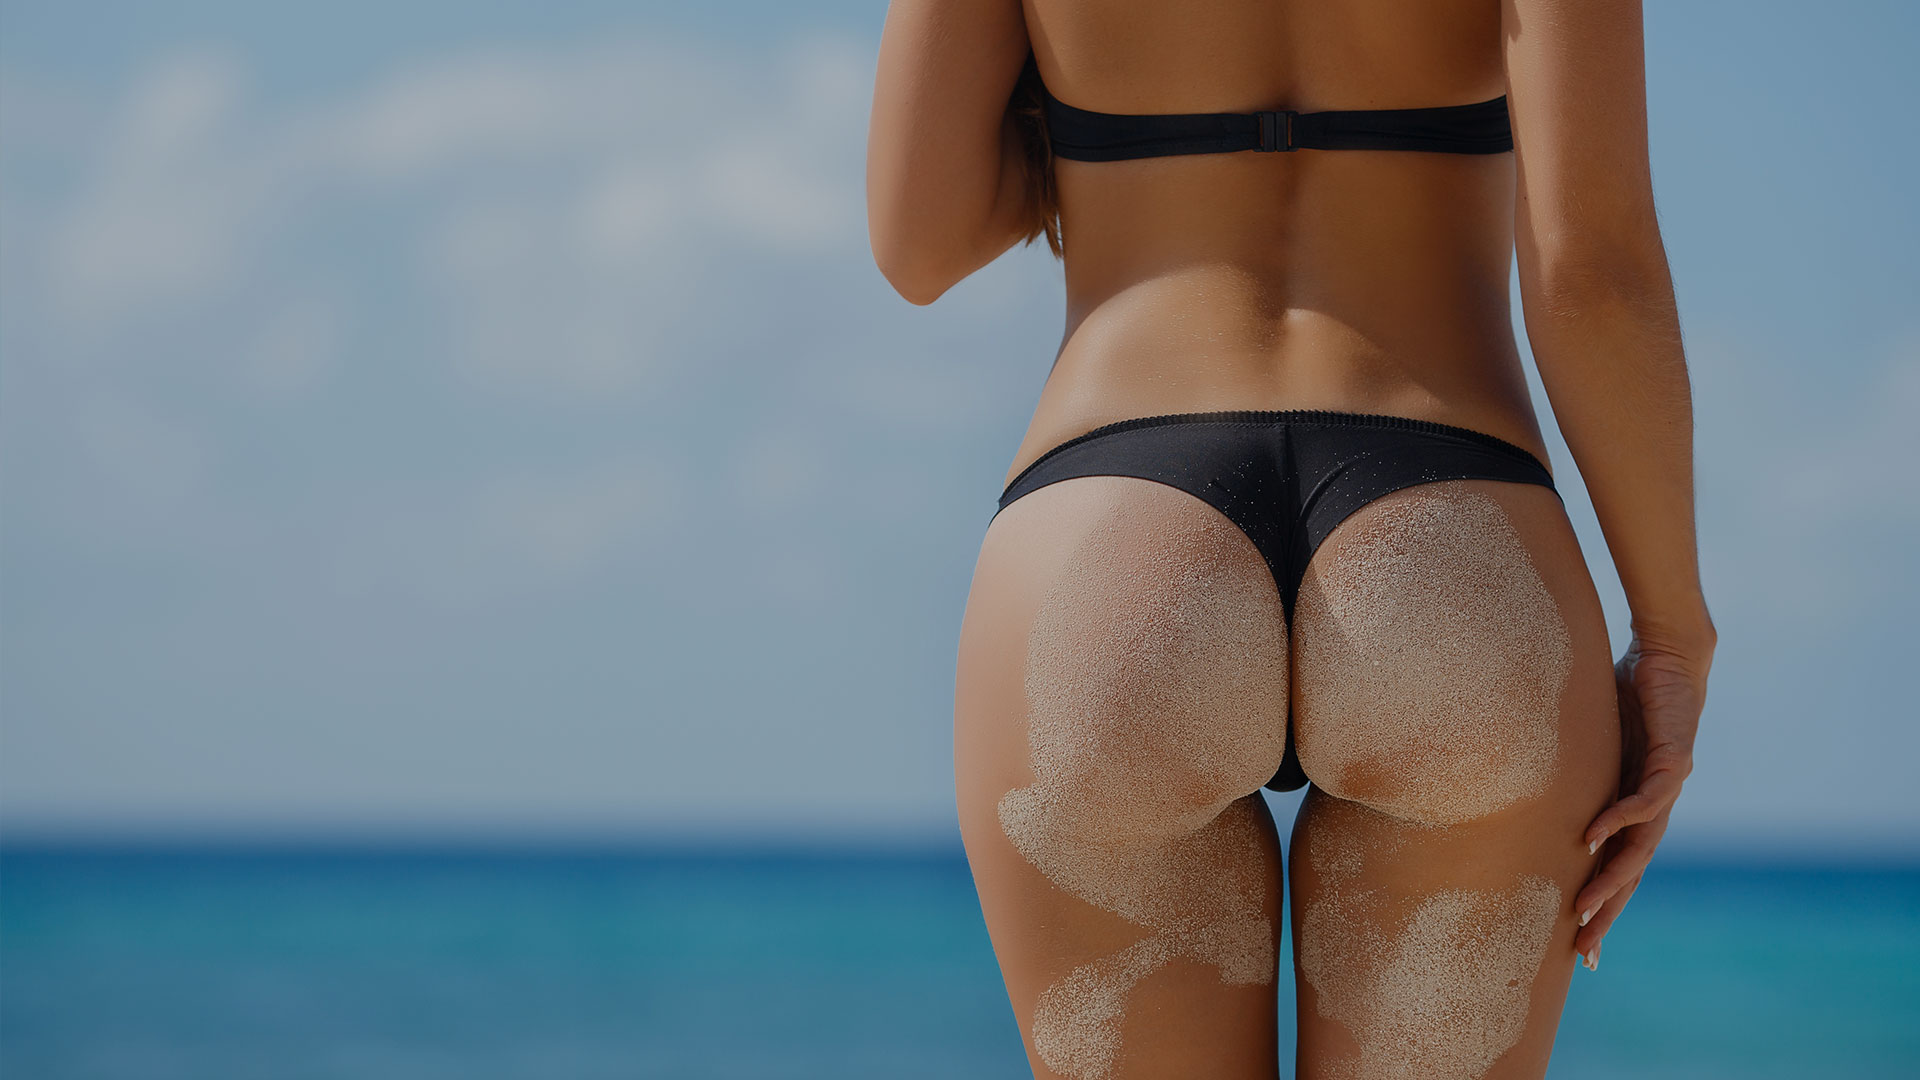 Korumalı: Brazilian Butt Lift